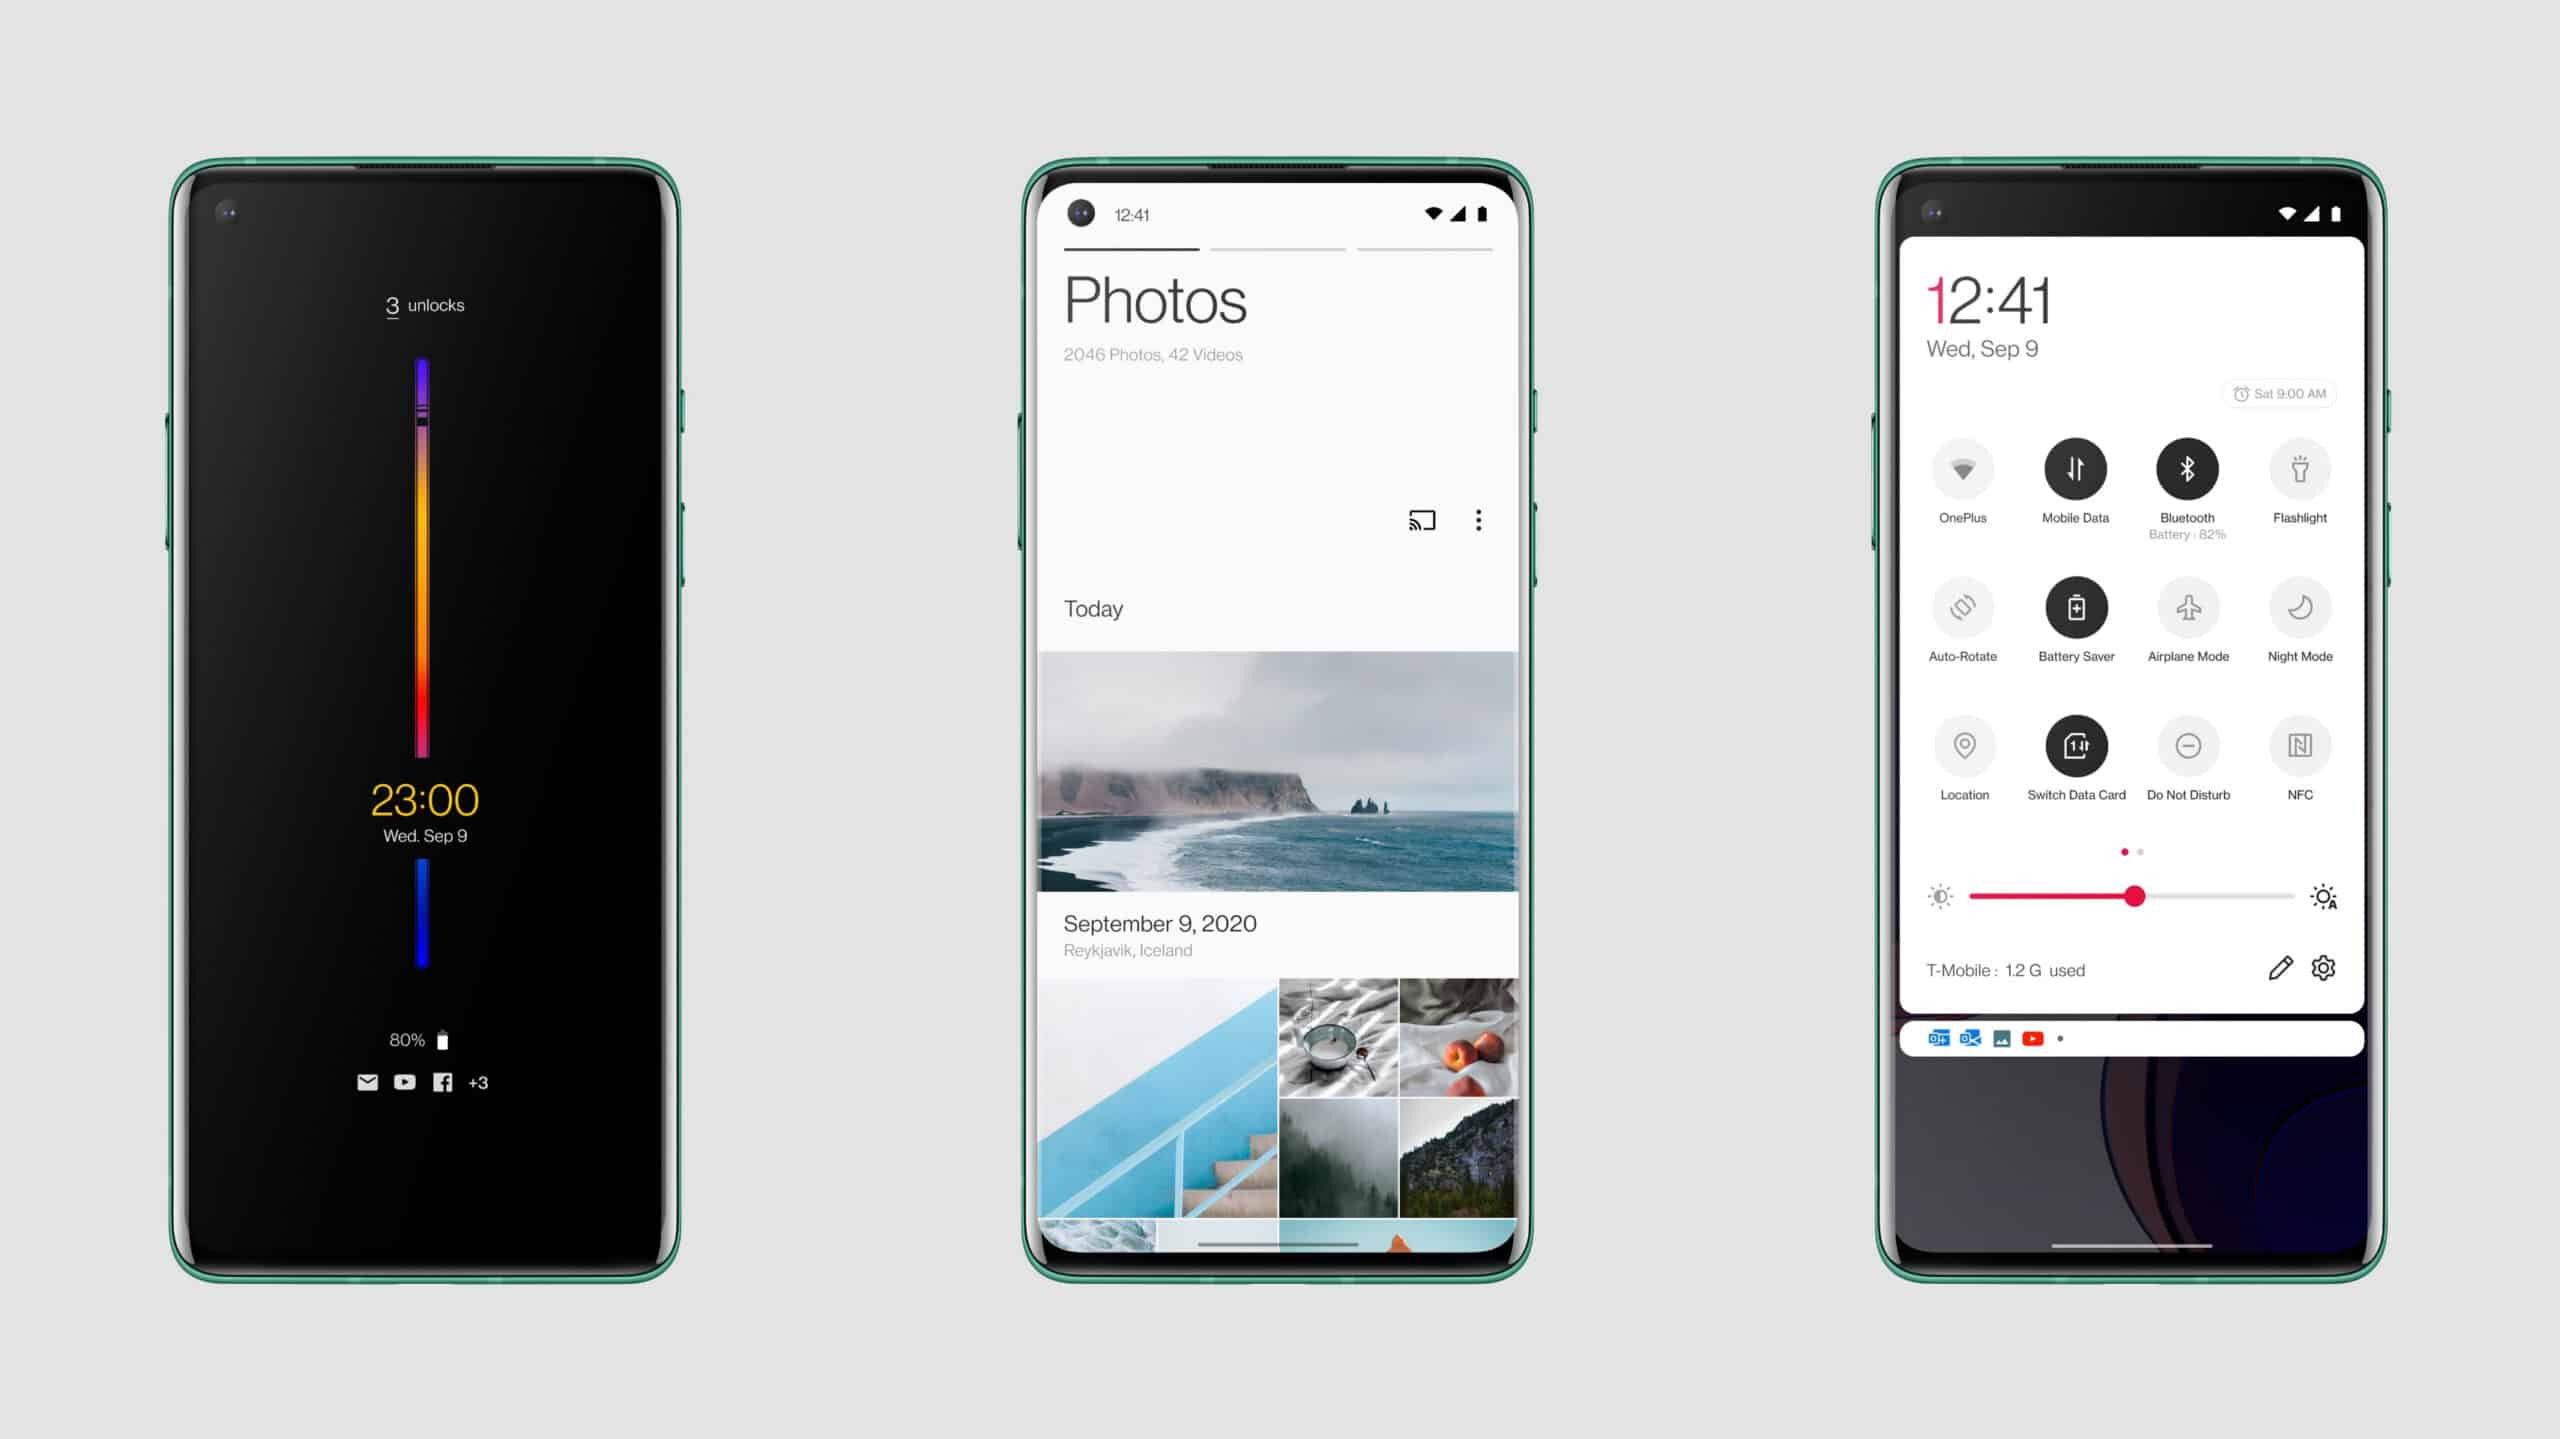 Take A Closer Look At OnePlus OxygenOS 11 UI: Gallery